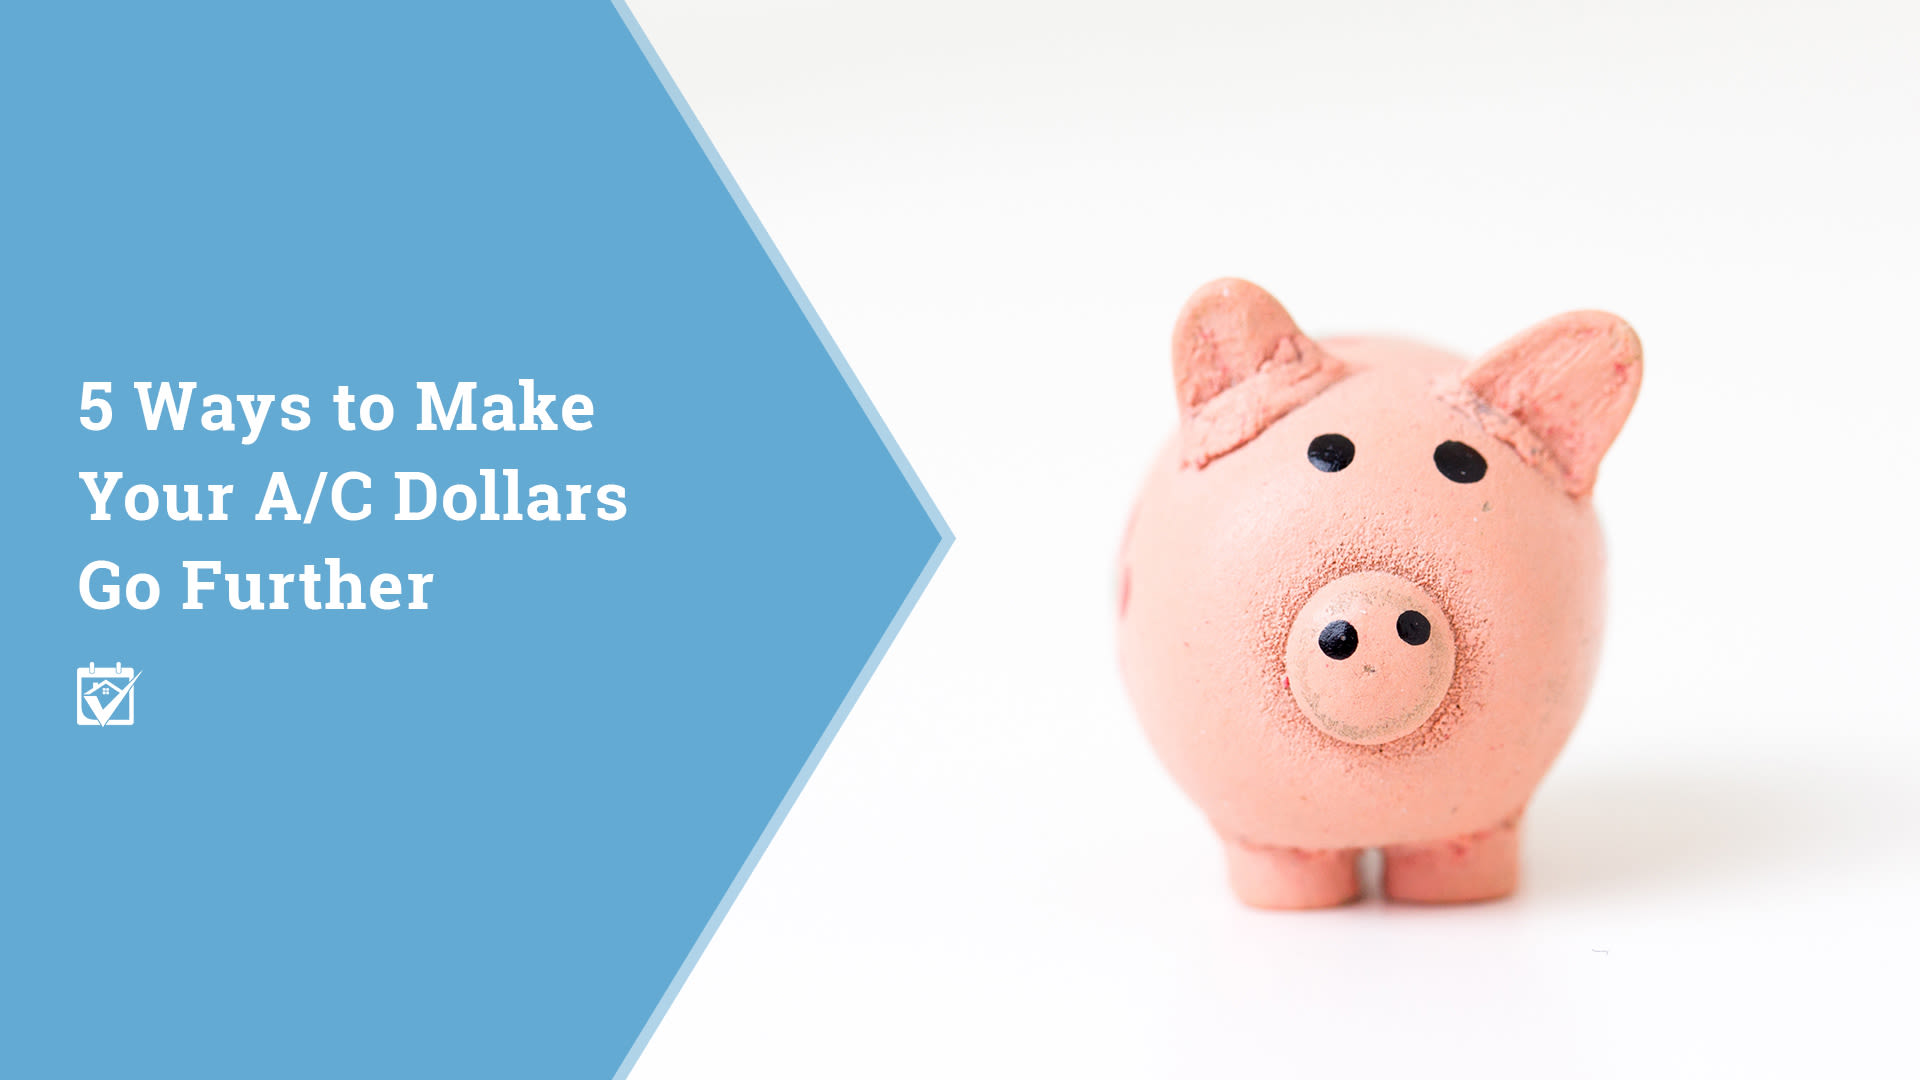 5 Ways to Make Your A/C Dollars Go Further